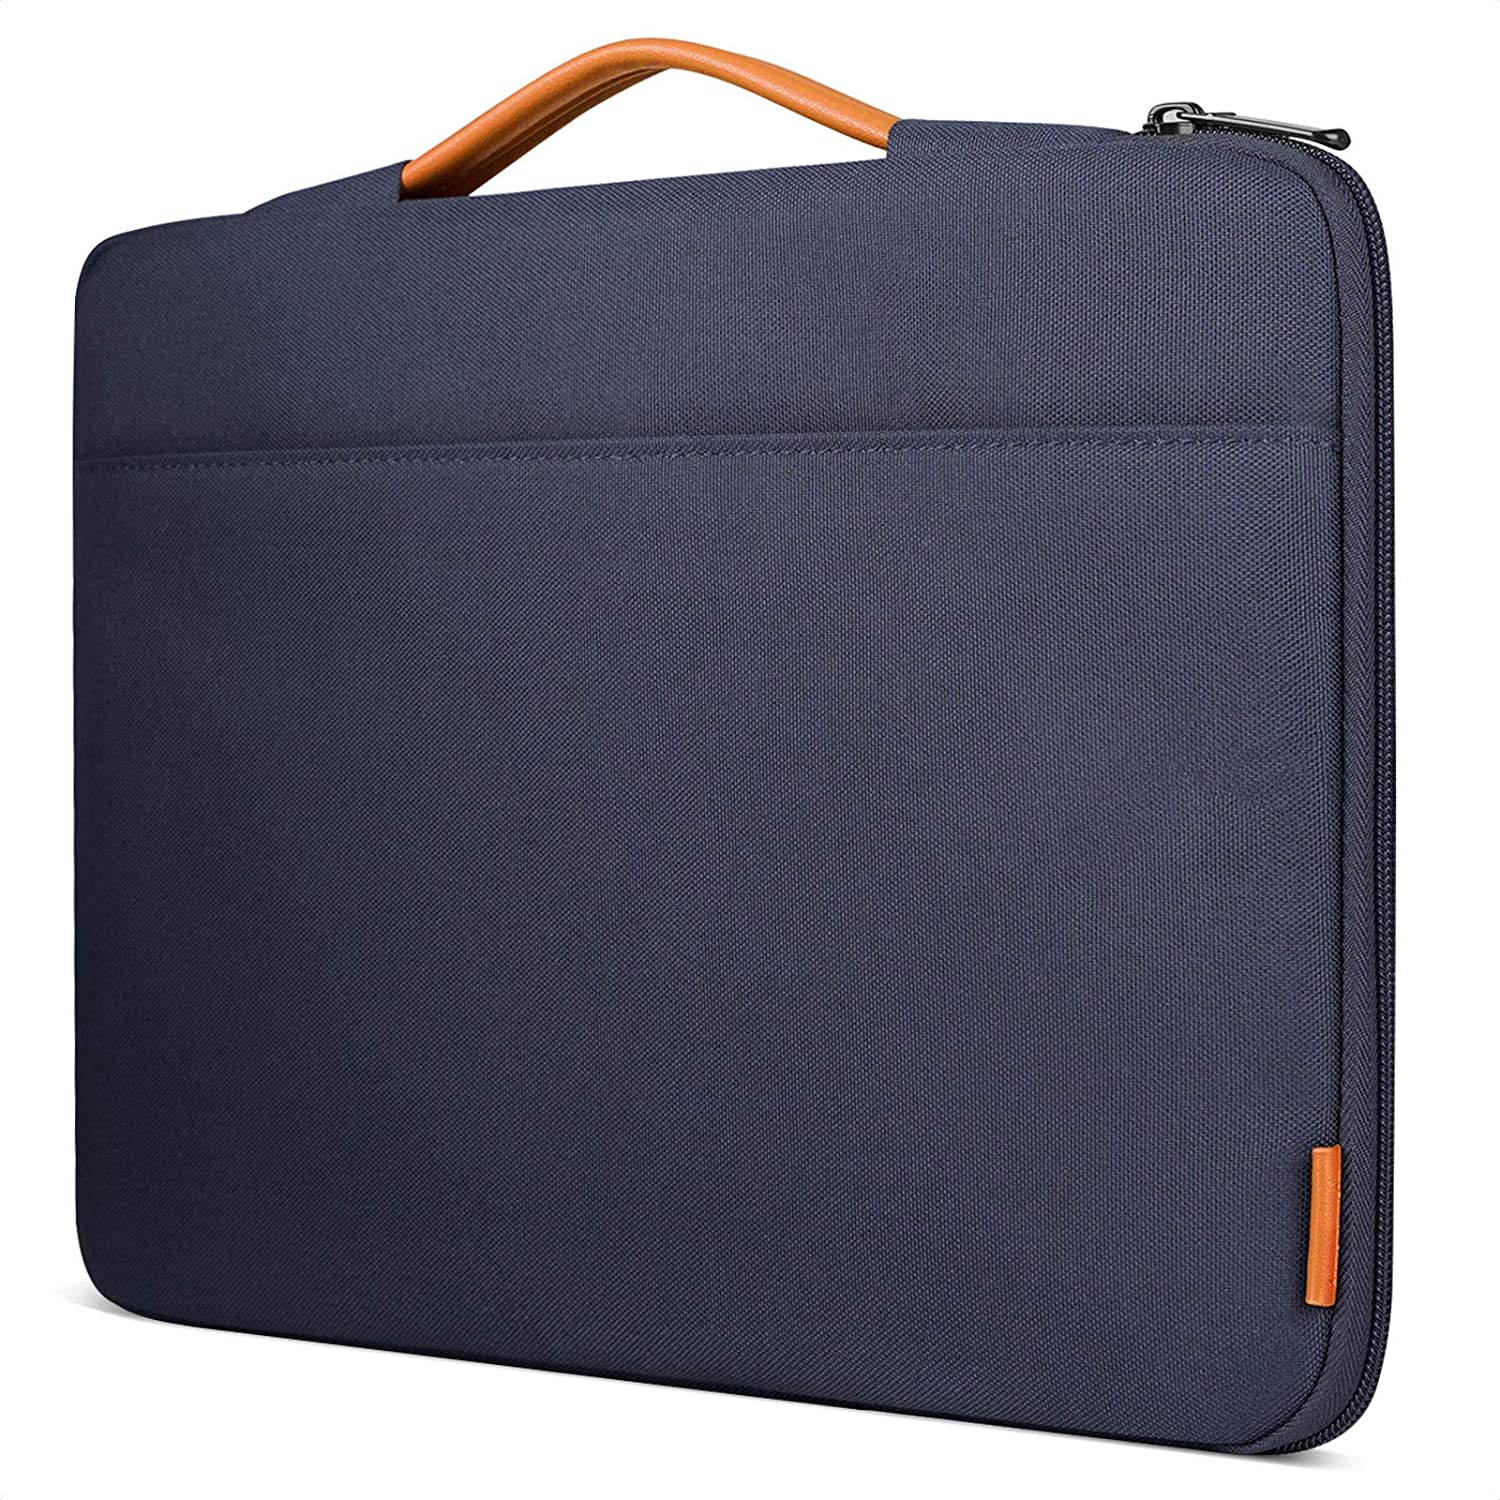 Inateck 13-13.3 Inch Sleeve Case Cover Protective Bag Ultrabook Netbook Carrying Protector Handbag Compatible with 13 Inch MacBook Air/MacBook Pro(Retina) 2012-2015, 2020/2019/2018/2017/2016 - Blue